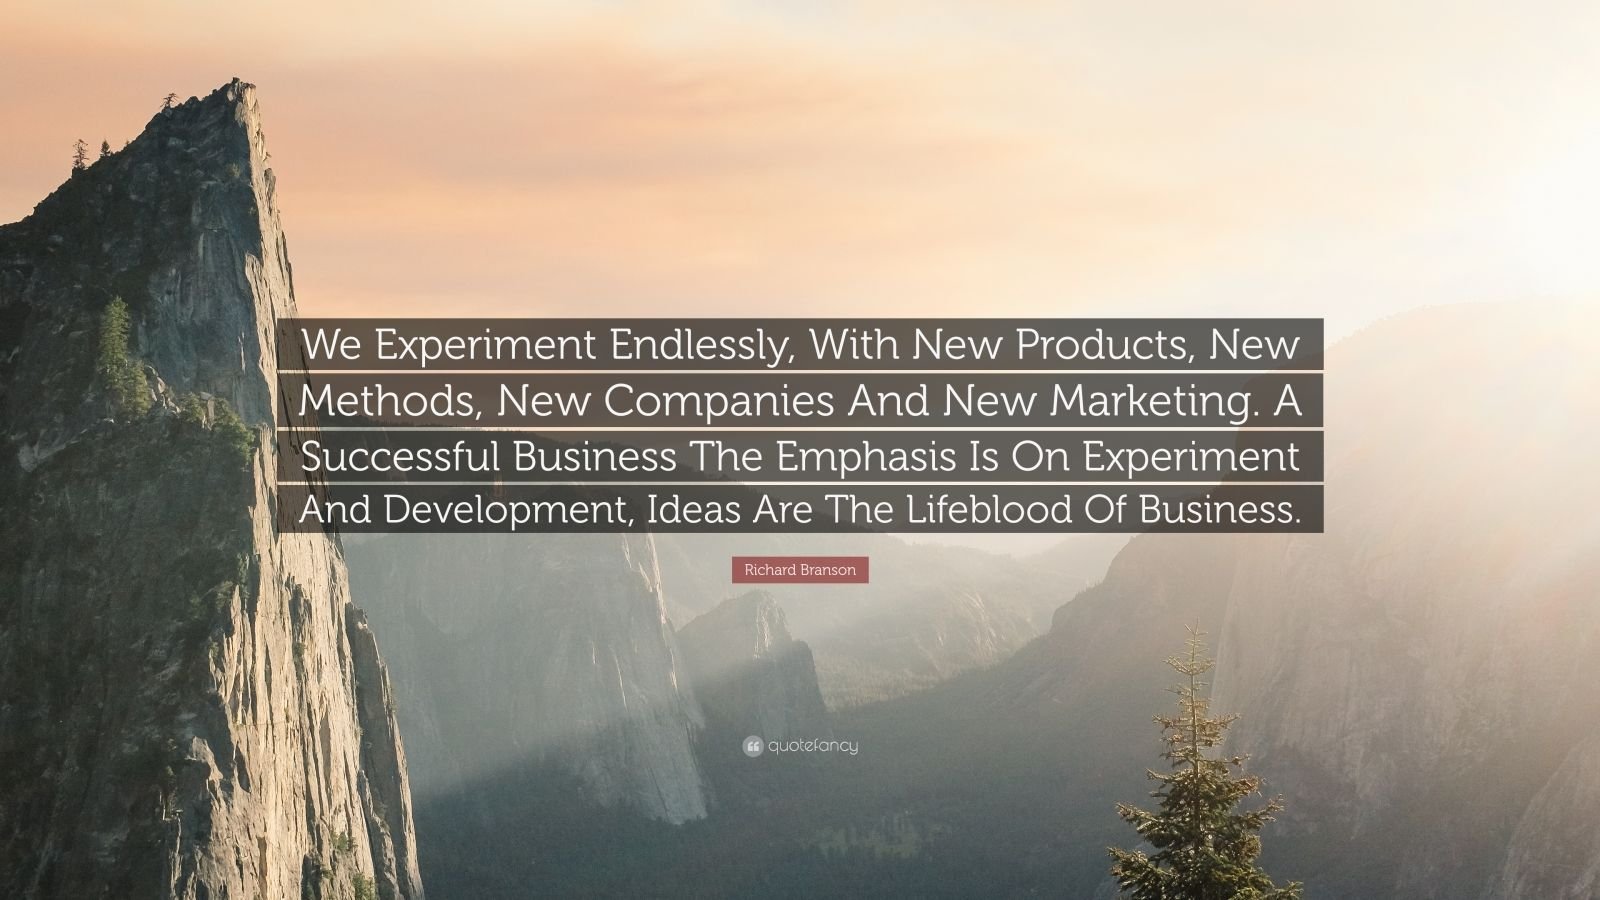 """Richard Branson Quote: """"We Experiment Endlessly, With New Products, New Methods, New Companies And New Marketing. A Successful Business The Emphasis Is On Experiment And Development, Ideas Are The Lifeblood Of Business."""""""